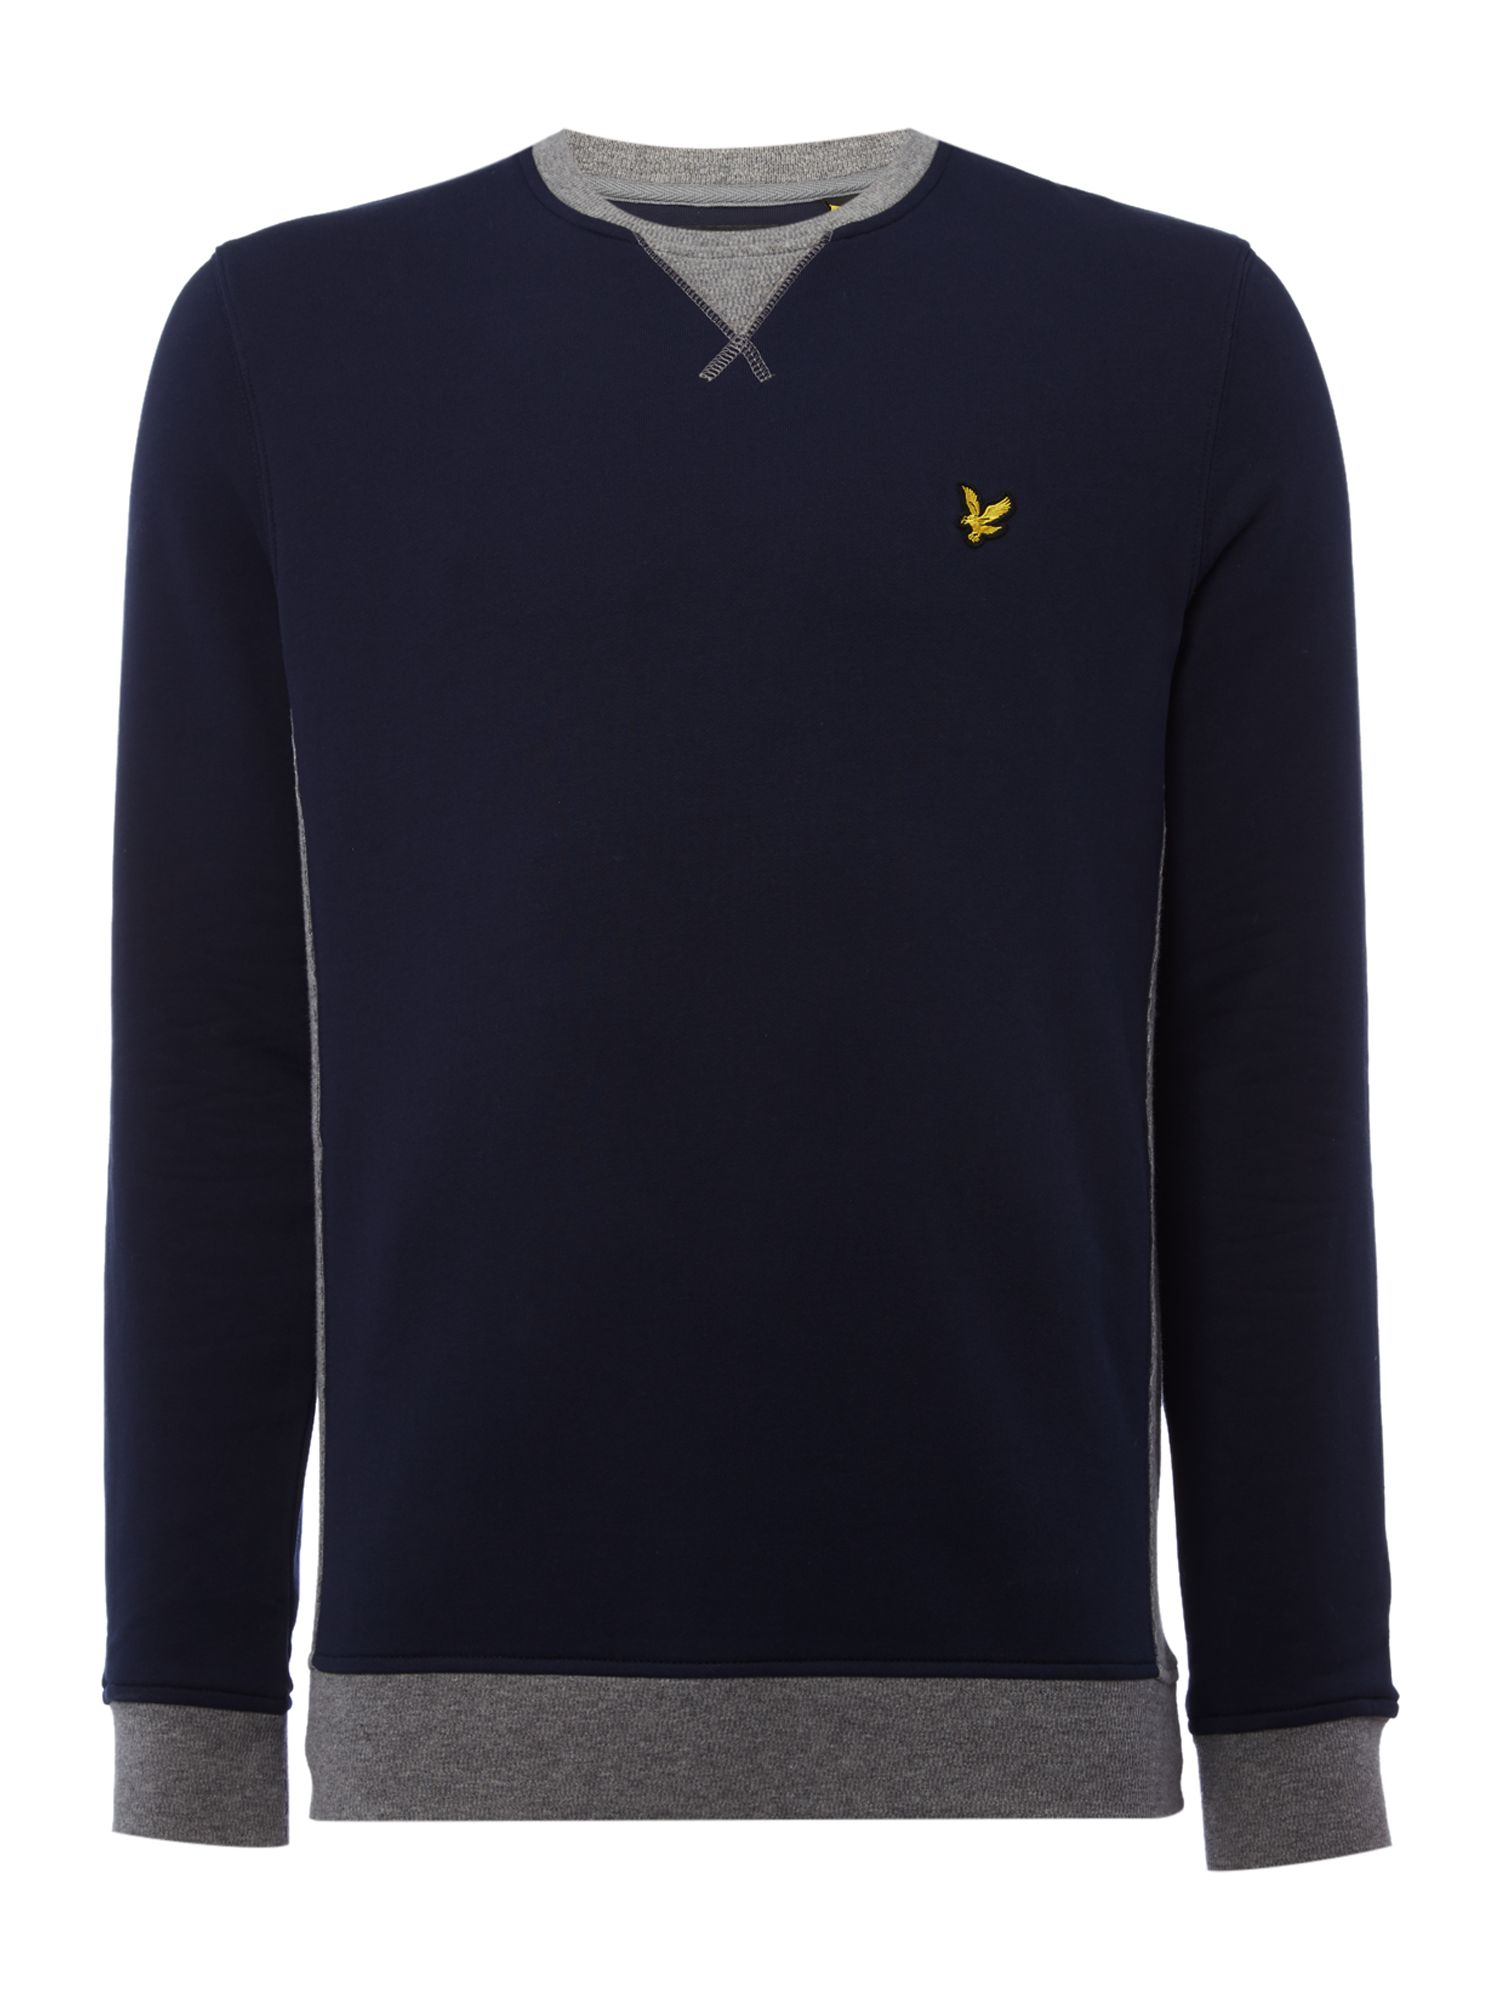 Men's Lyle and Scott Contrast rib crew neck sweatshirt, Blue